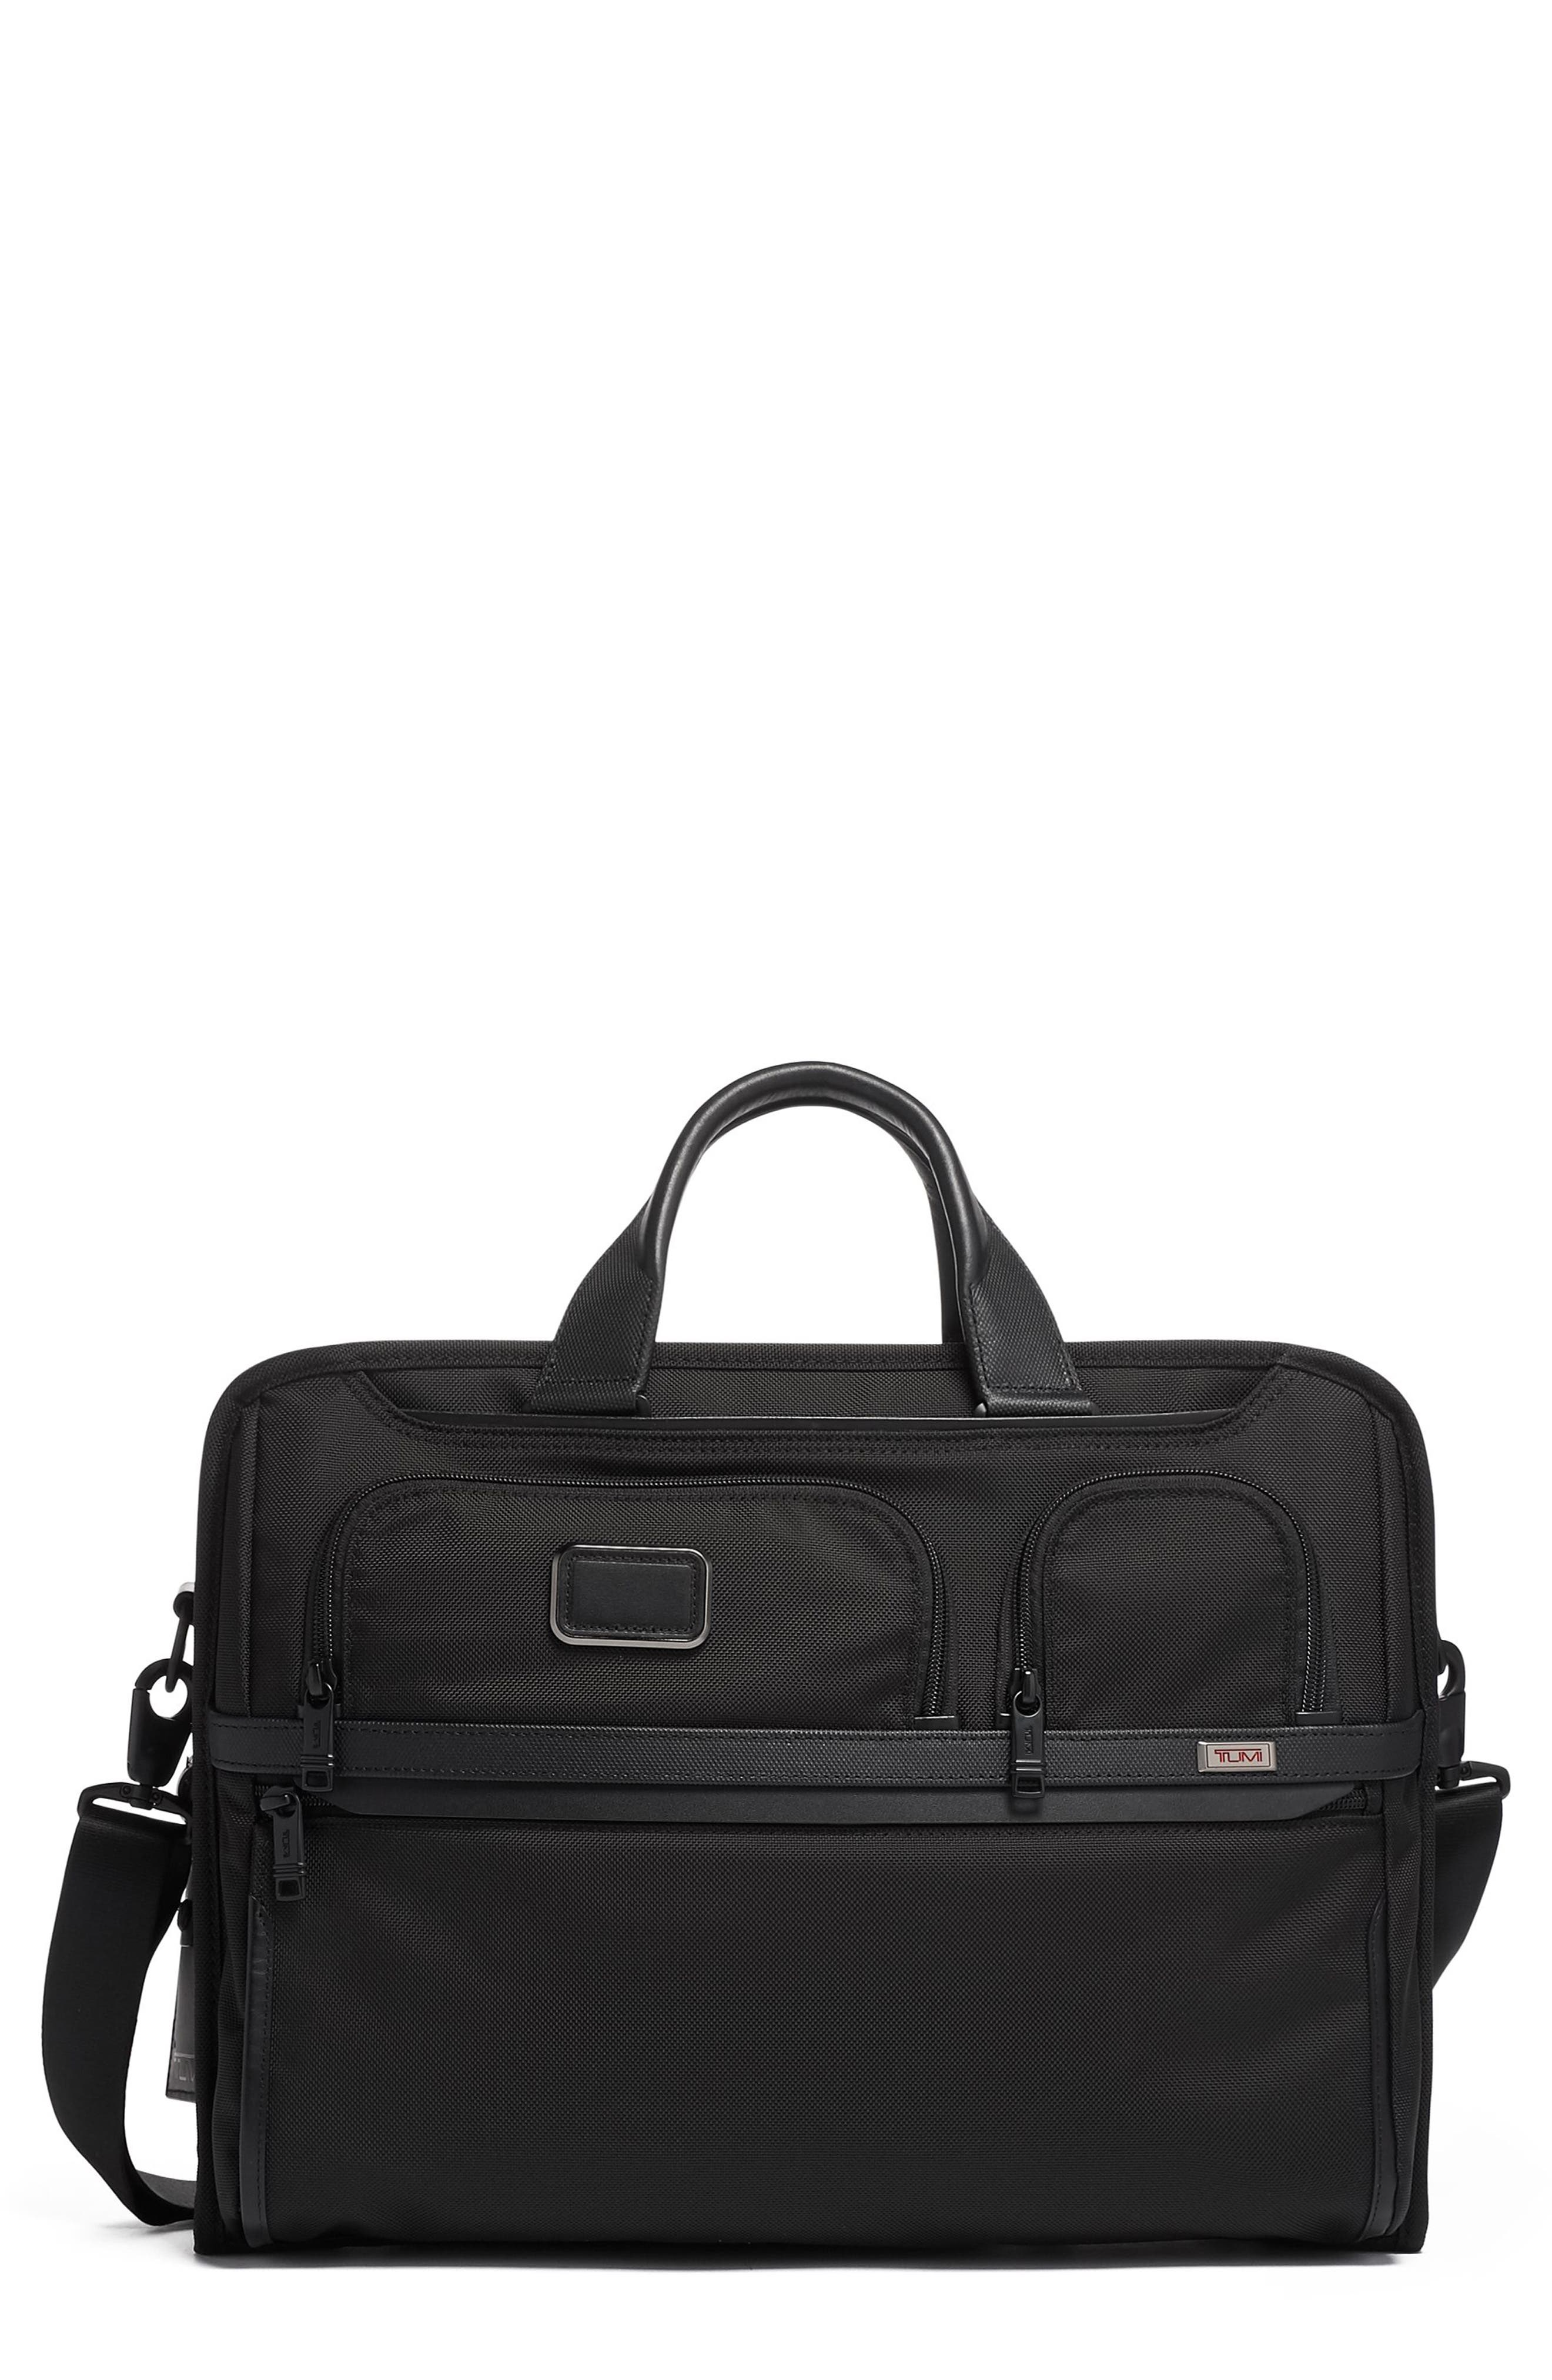 8567b084f Tumi Alpha 3 Compact Large 15-Inch Laptop Briefcase -